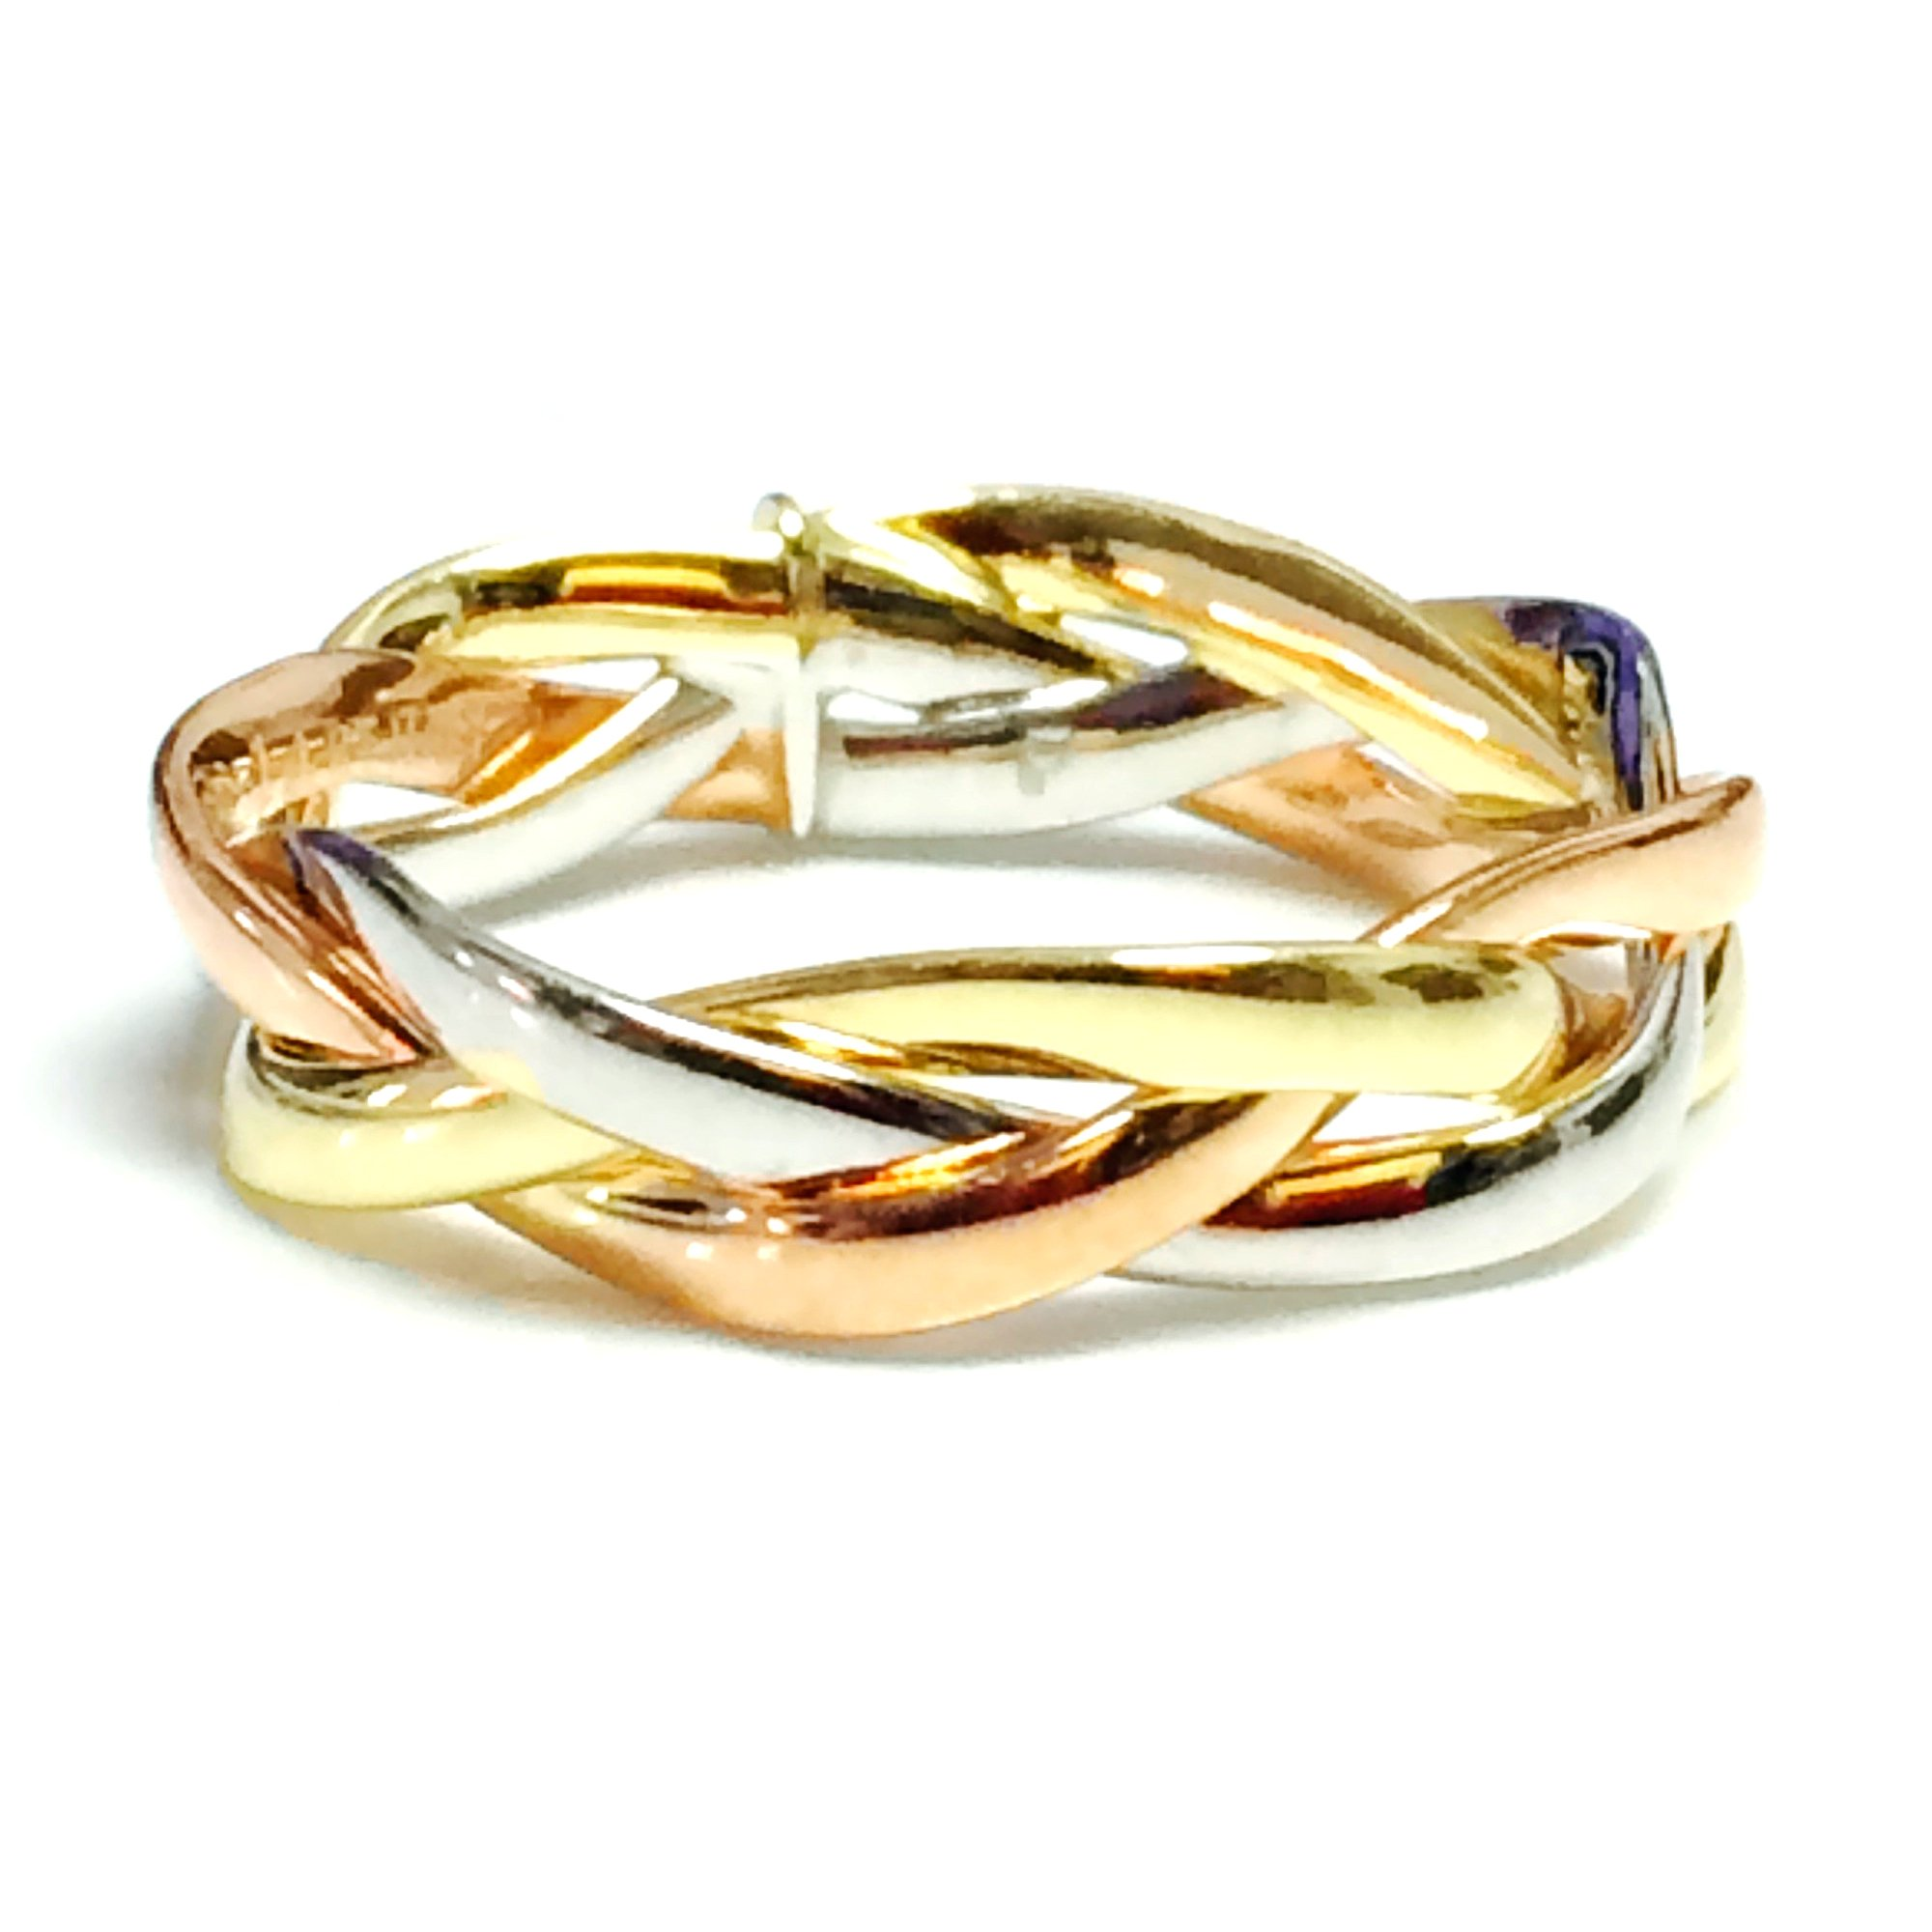 14K Tri-Color Gold Intertwined Braided Ring, 5mm, Size 8